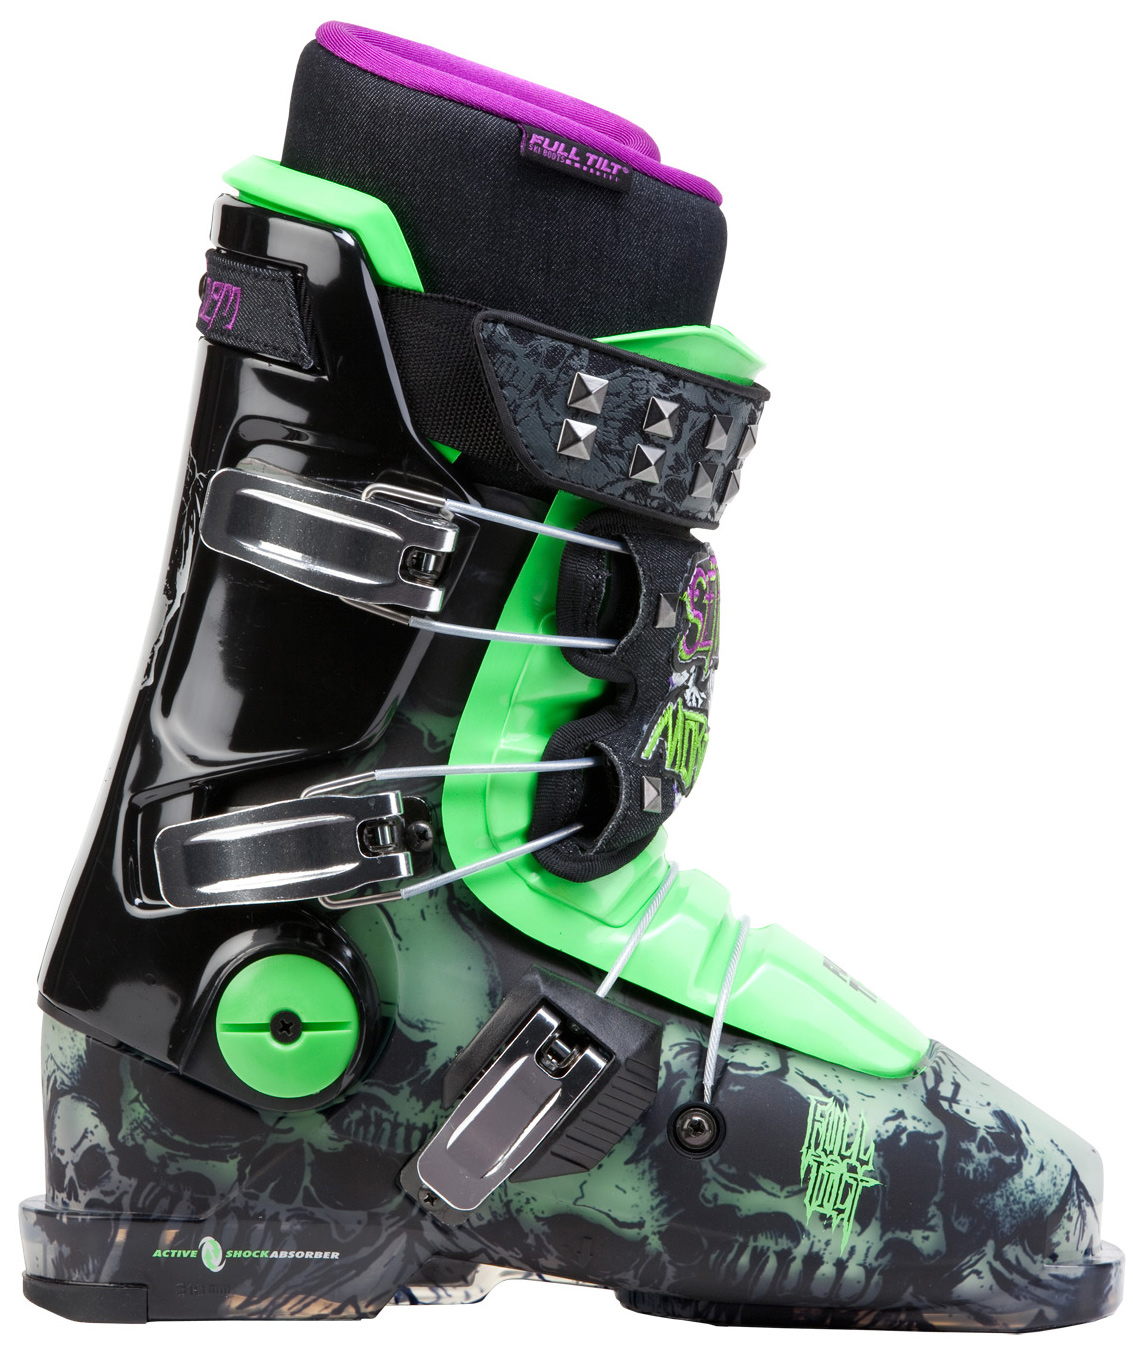 Ski Being one of the most respected big mountain skiers in the world comes with taking some big risks. The one risk Seth refuses to take is to change his ski boots, making the Full Tilt Seth Morrison ski boot a necessity in staying on the top of his game. He credits the Original 3-Piece ski boot design's shock absorbing natural ankle flex, ultra light weight & responsive construction, plus our Pro Quick-Fit liner with Intuition foam that molds 100% to your feet for giving him the ability to ski like few others can, year after year.Key Features of the Full Tilt Seth Morrison Ski Boots: Original Shell 3-Piece Design, 99mm width last #8 Flex / 7 Rib tongue for maximum power with natural flex Active Bootboard absorbs Seth sized vibration & impact 3 Cable closure eliminates deadspots for even pressure Aluminum ratchet buckles for durable micro adjustments Pro Liner highest performance that molds 100% to your feet - $519.95